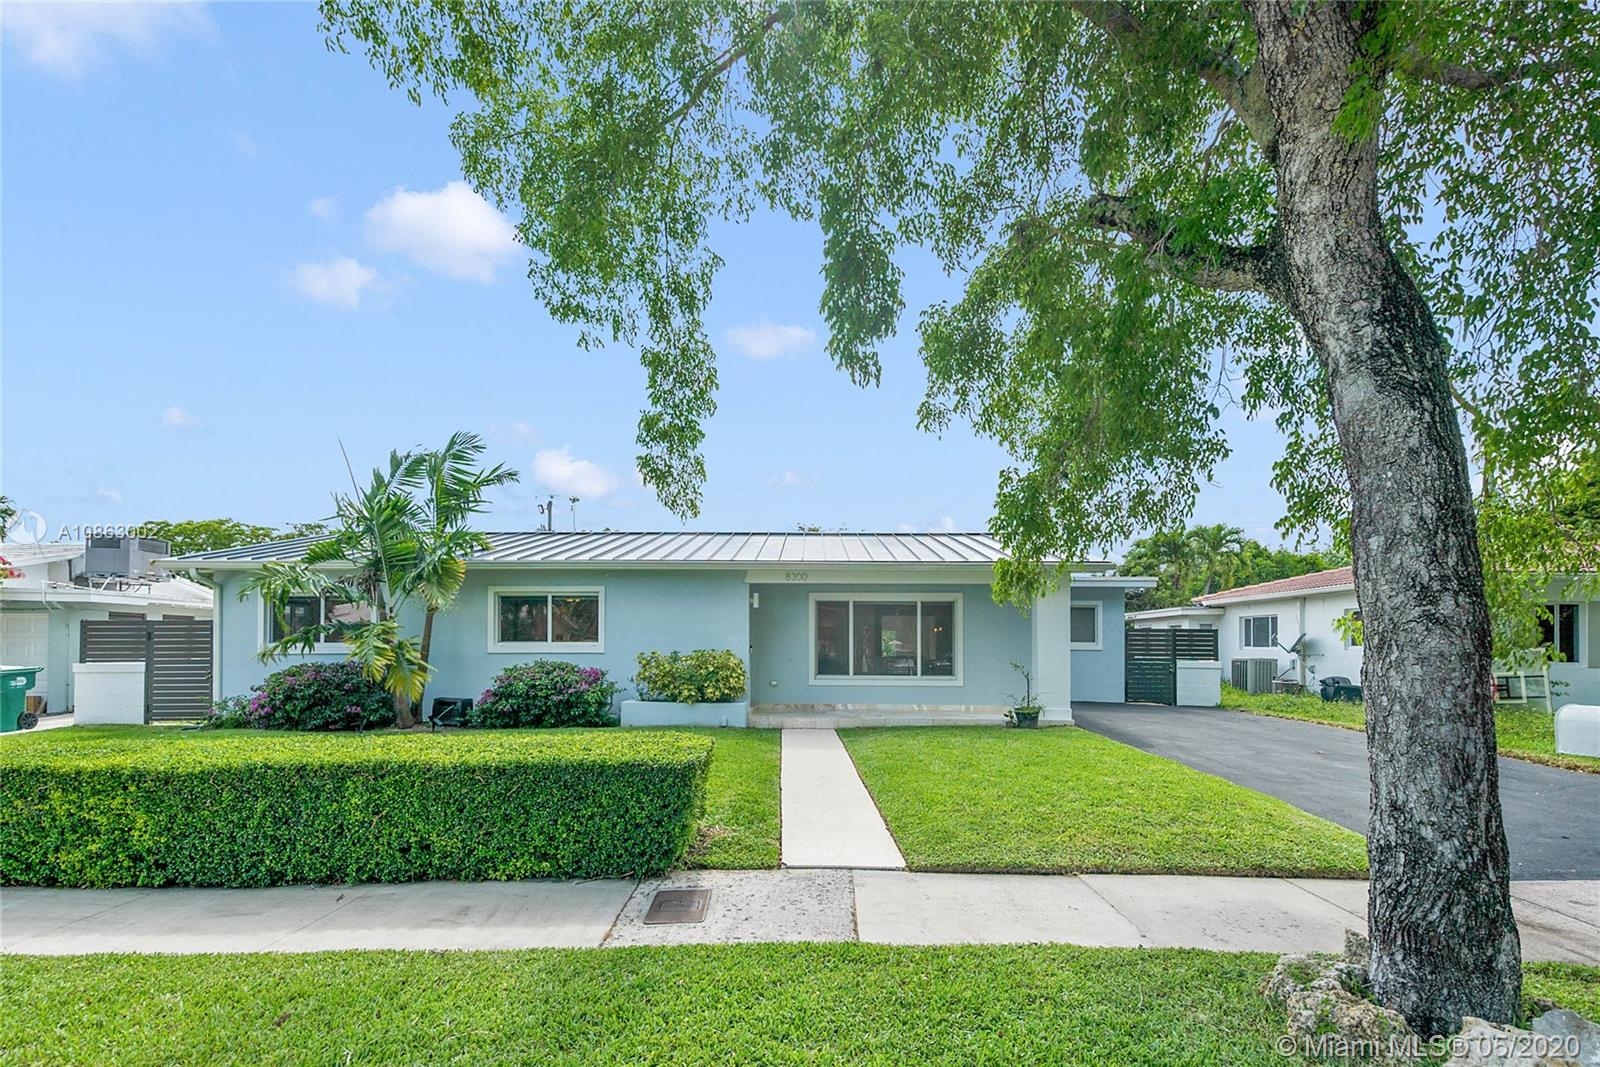 8300 SW 62nd Ct, Coral Gables in Miami-dade County County, FL 33143 Home for Sale